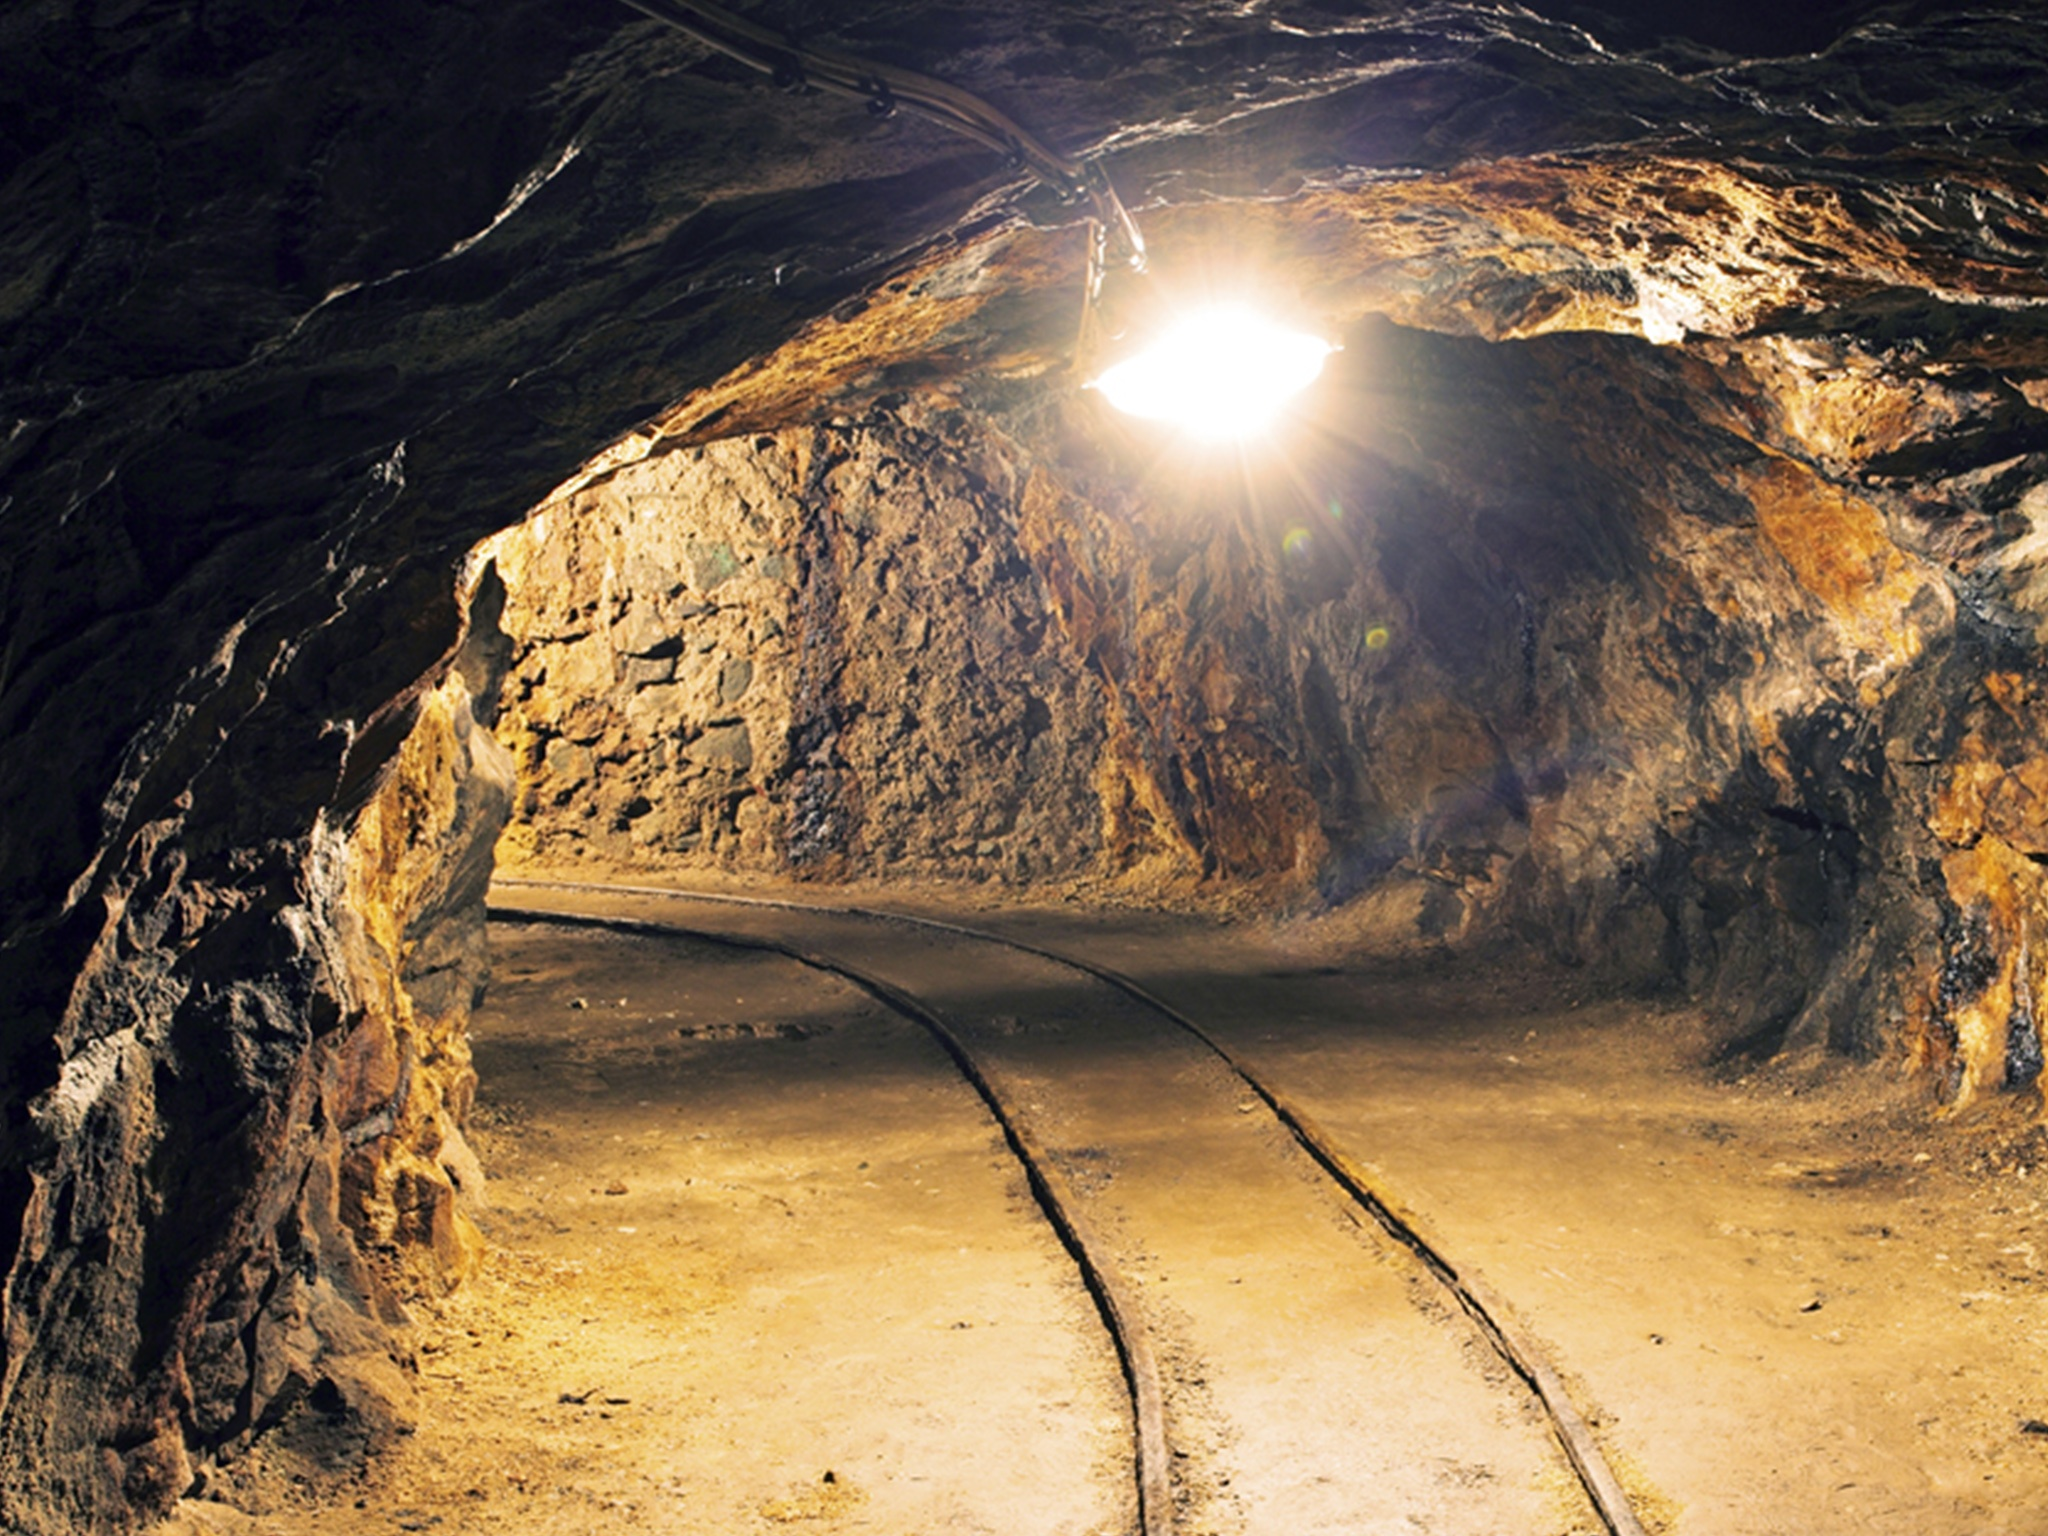 Lone Star systems are rugged and require little maintenance Mining applications require blower systems that run in an extreme environment often times at high altitude. Systems Lone Star offers are rugged and require little maintenance as well as portable to be able to quickly and safely move as demanded. Let our experience work for you on your next project.